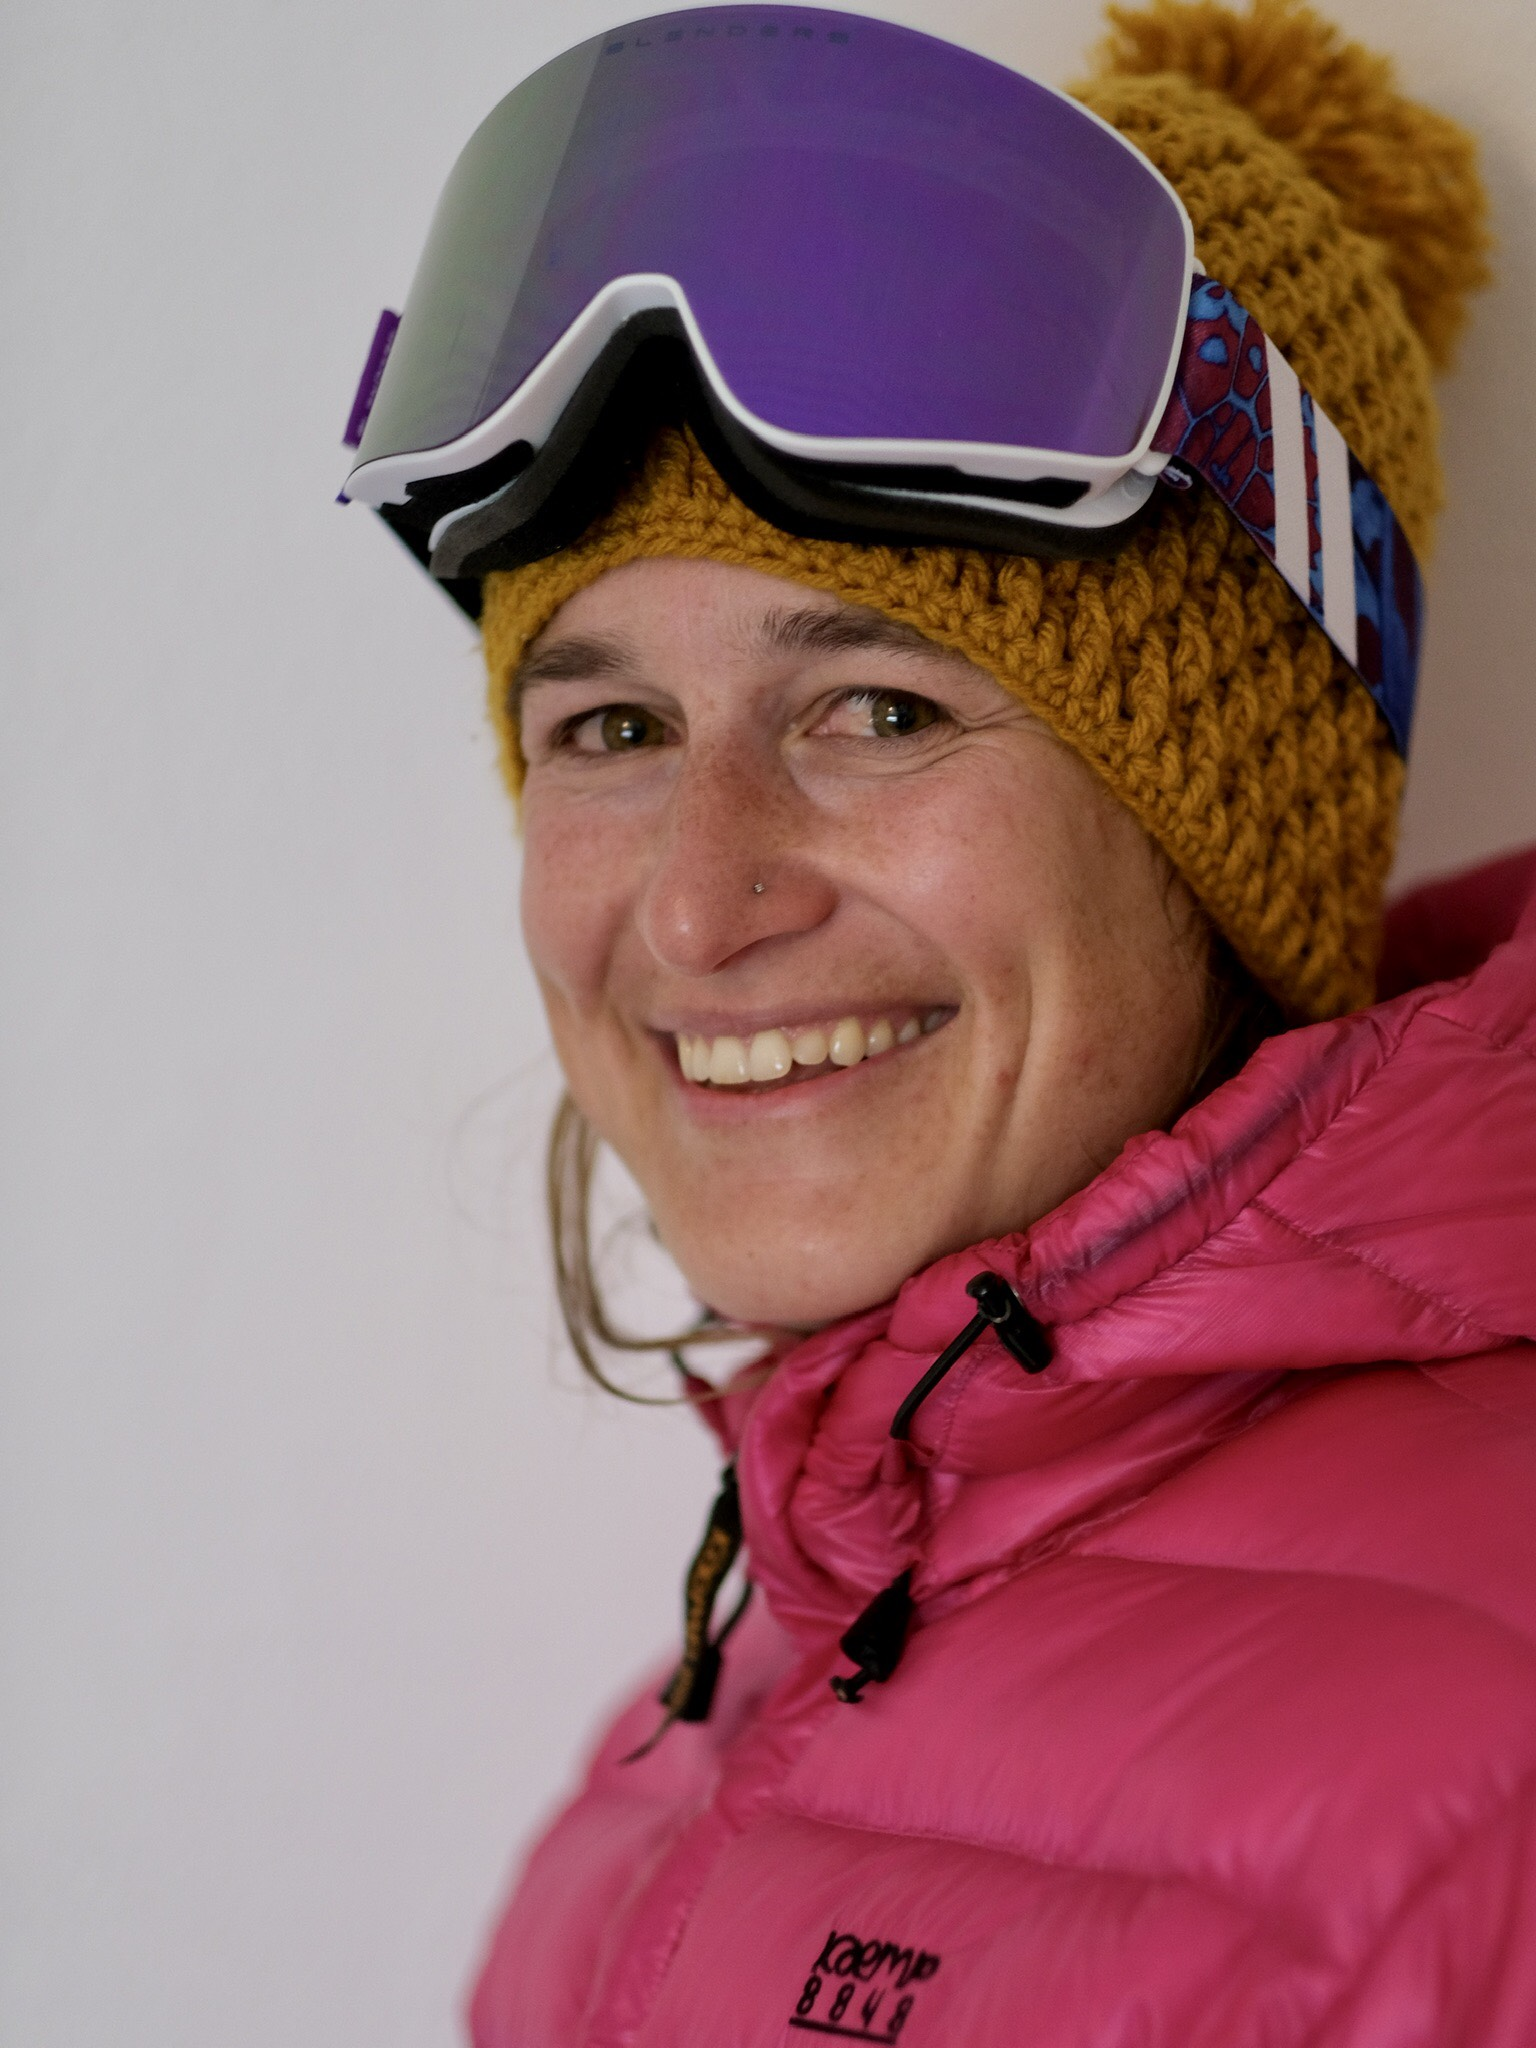 Martina, private ski, snowboard and yoga instructor in Klosters and Davos. Her private lessons are w